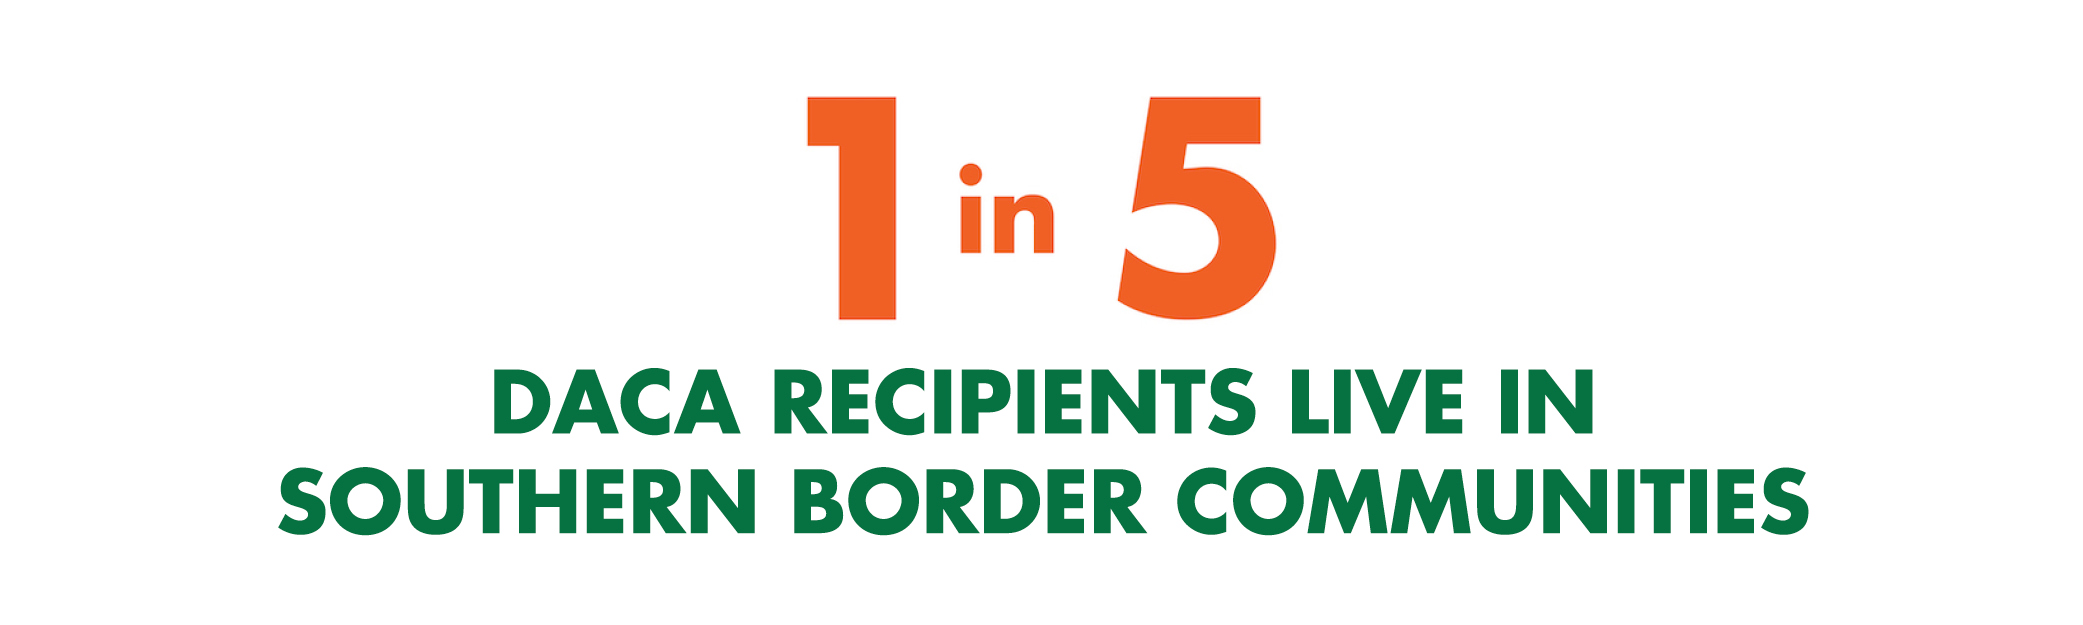 1 in 5 daca recipients live in southern border communities